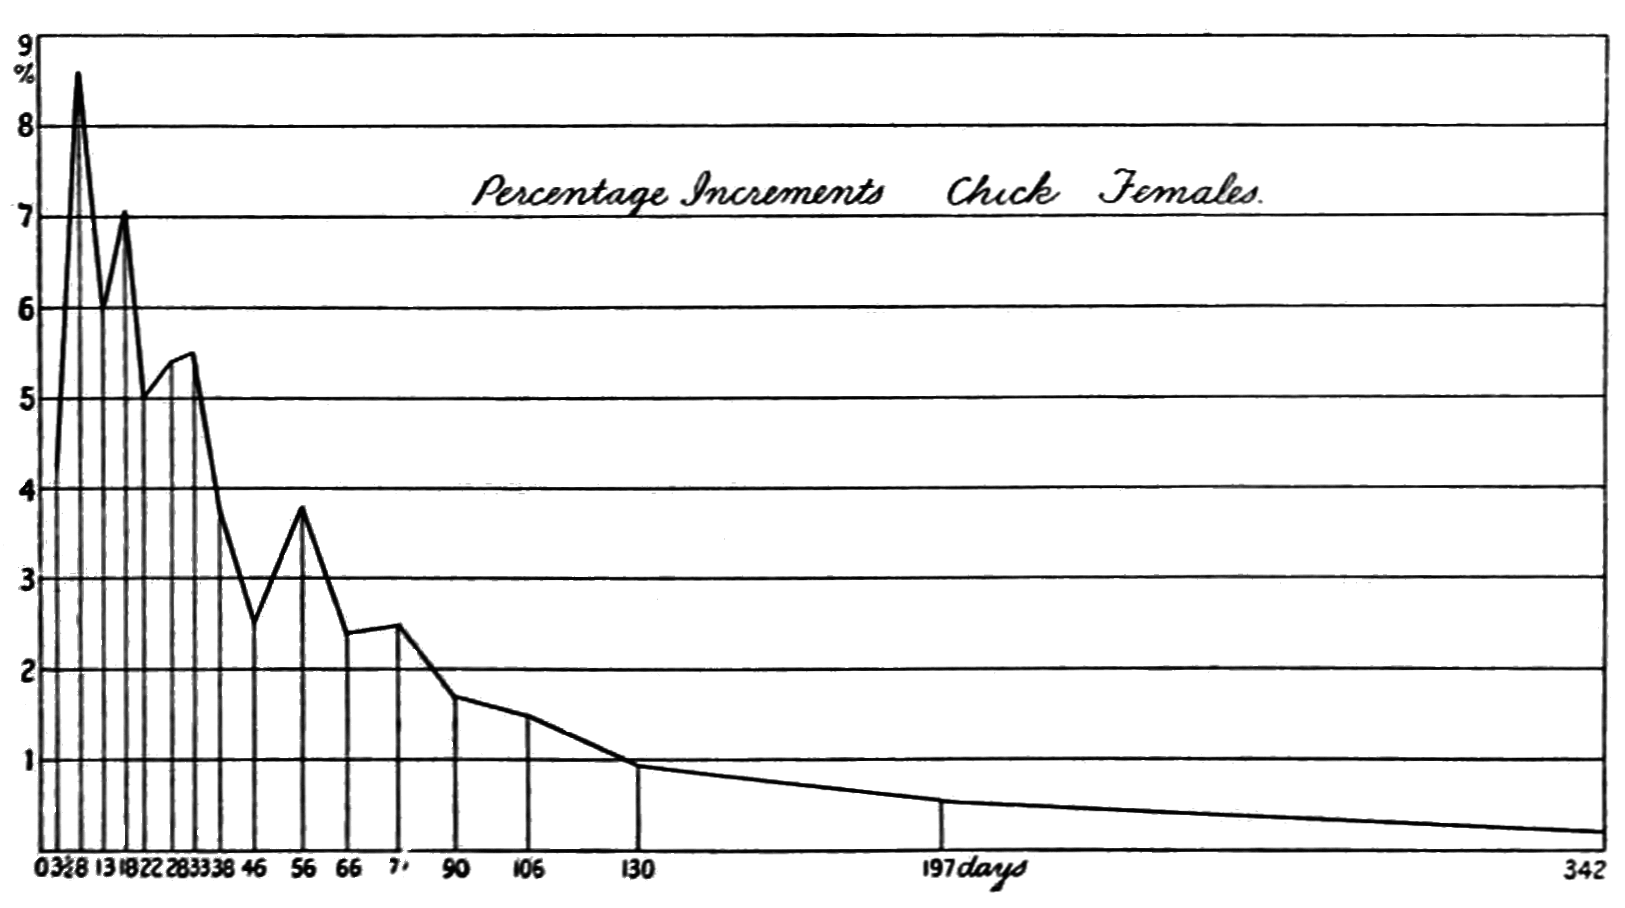 PSM V71 D207 Graph of the daily pc of weight increments by female chickens.png